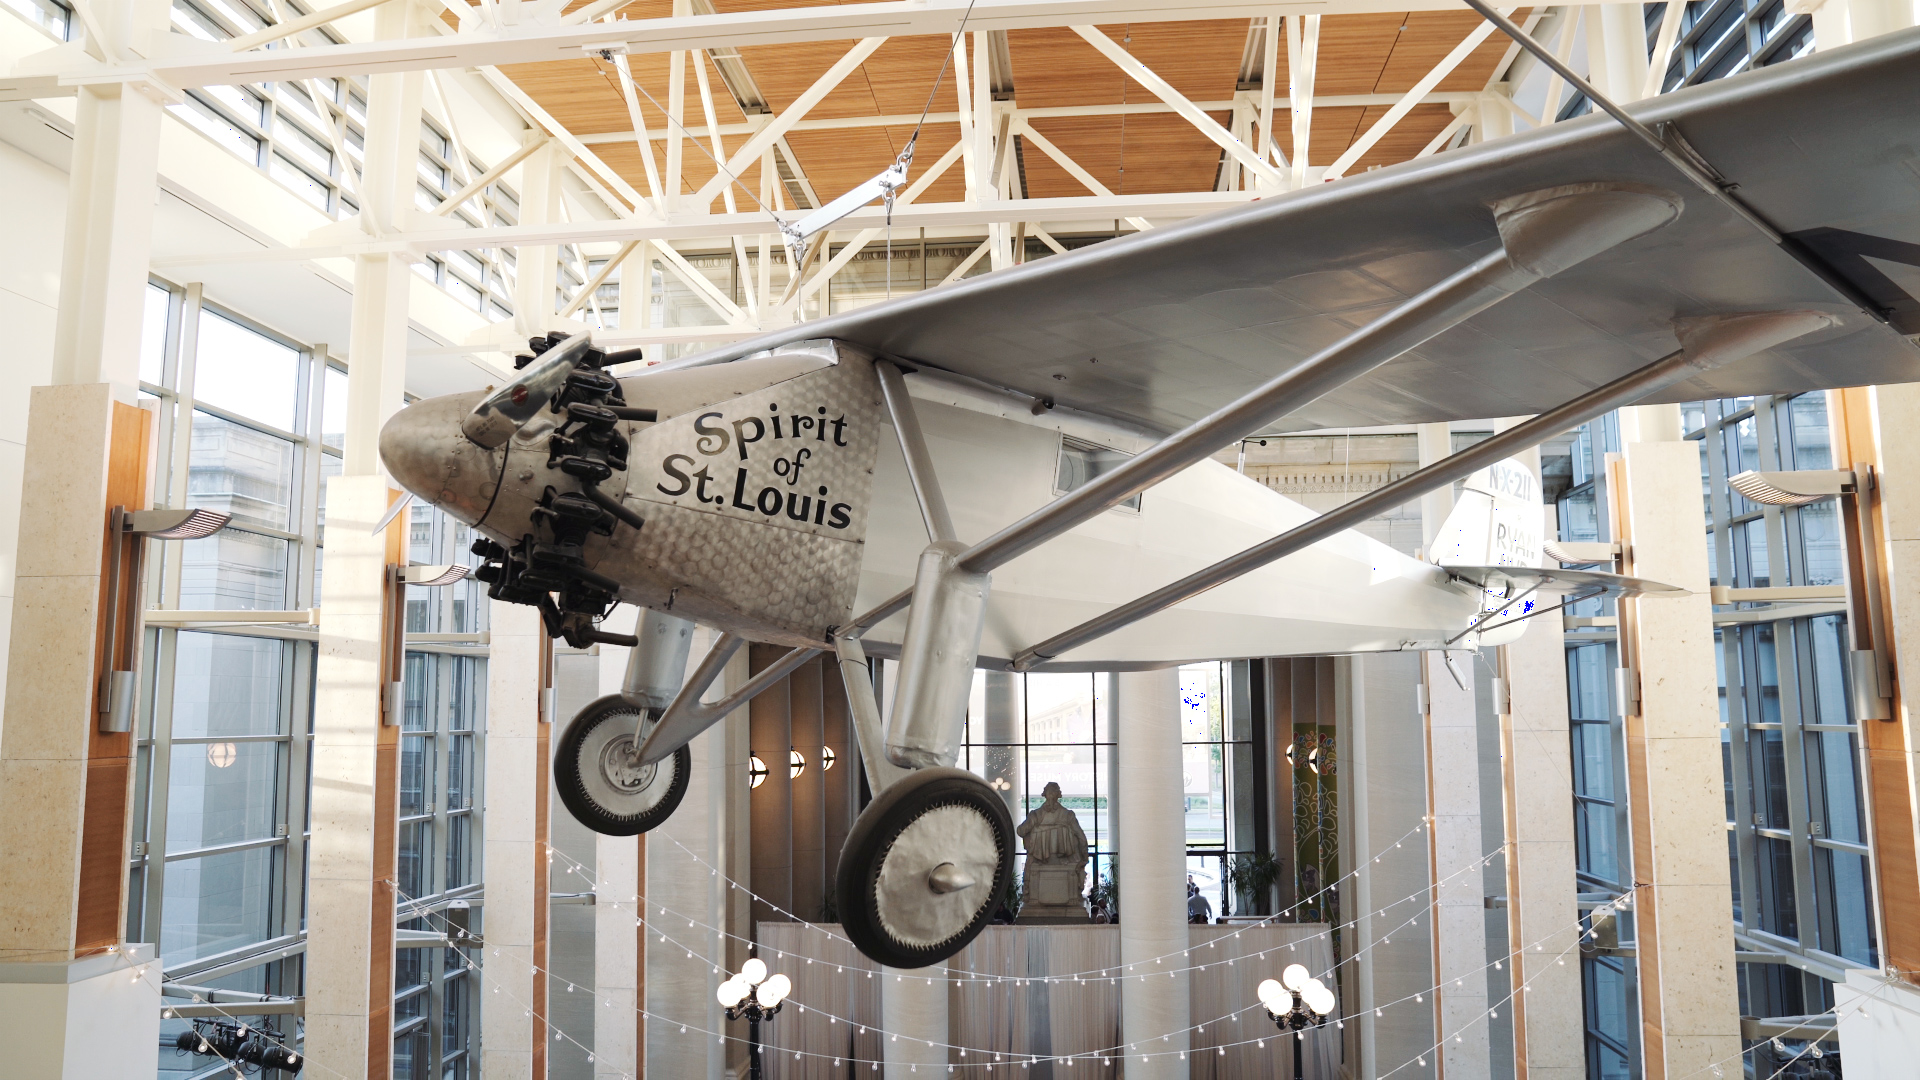 Missouri History Museum Wedding Video - Spirit of St Louis